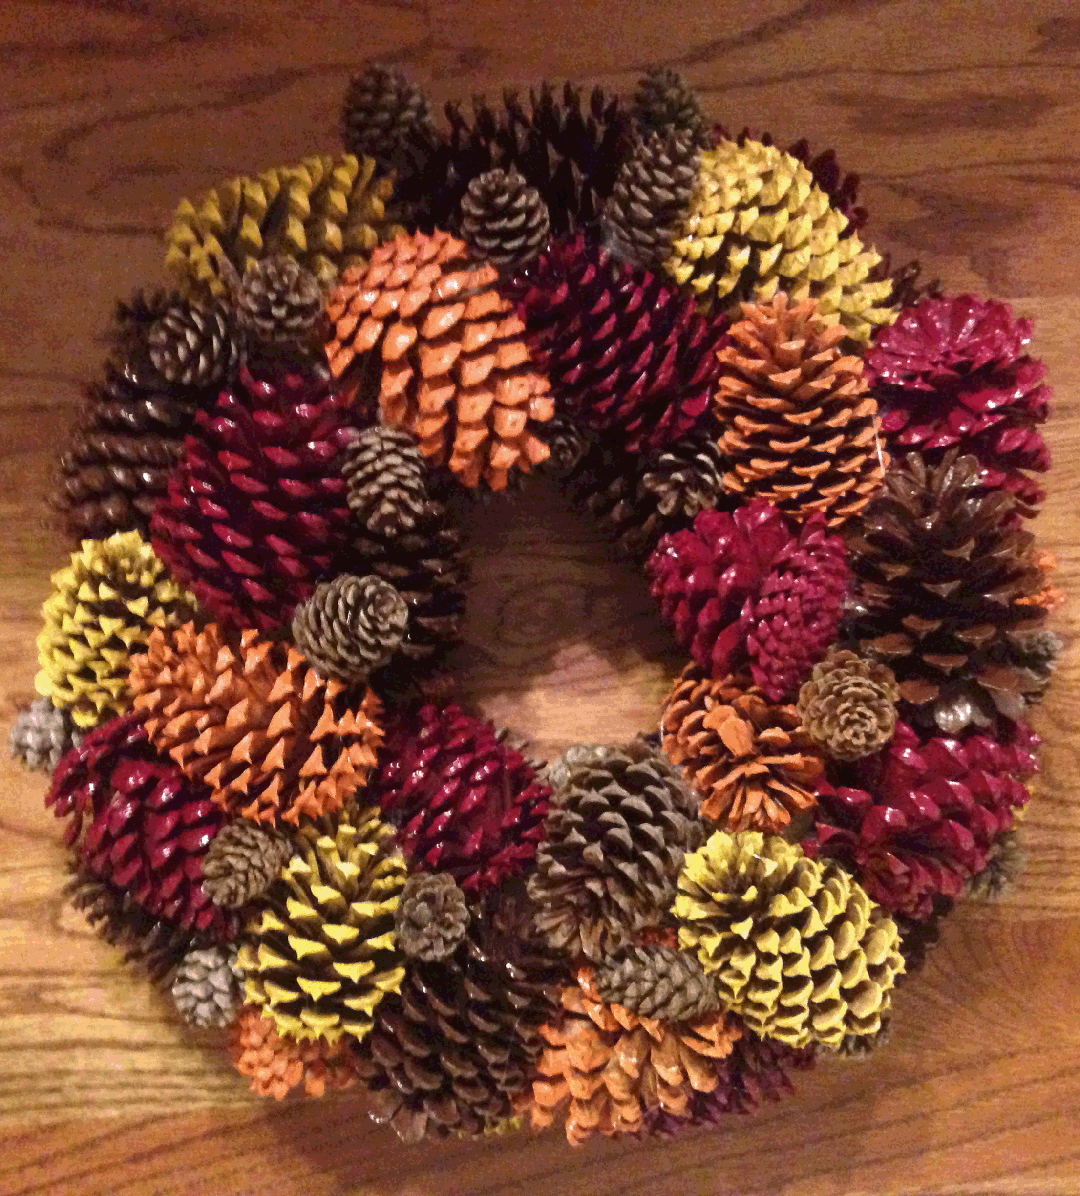 Pine Cone Wreath Pictures Photos And Images For Facebook Tumblr Pinterest And Twitter